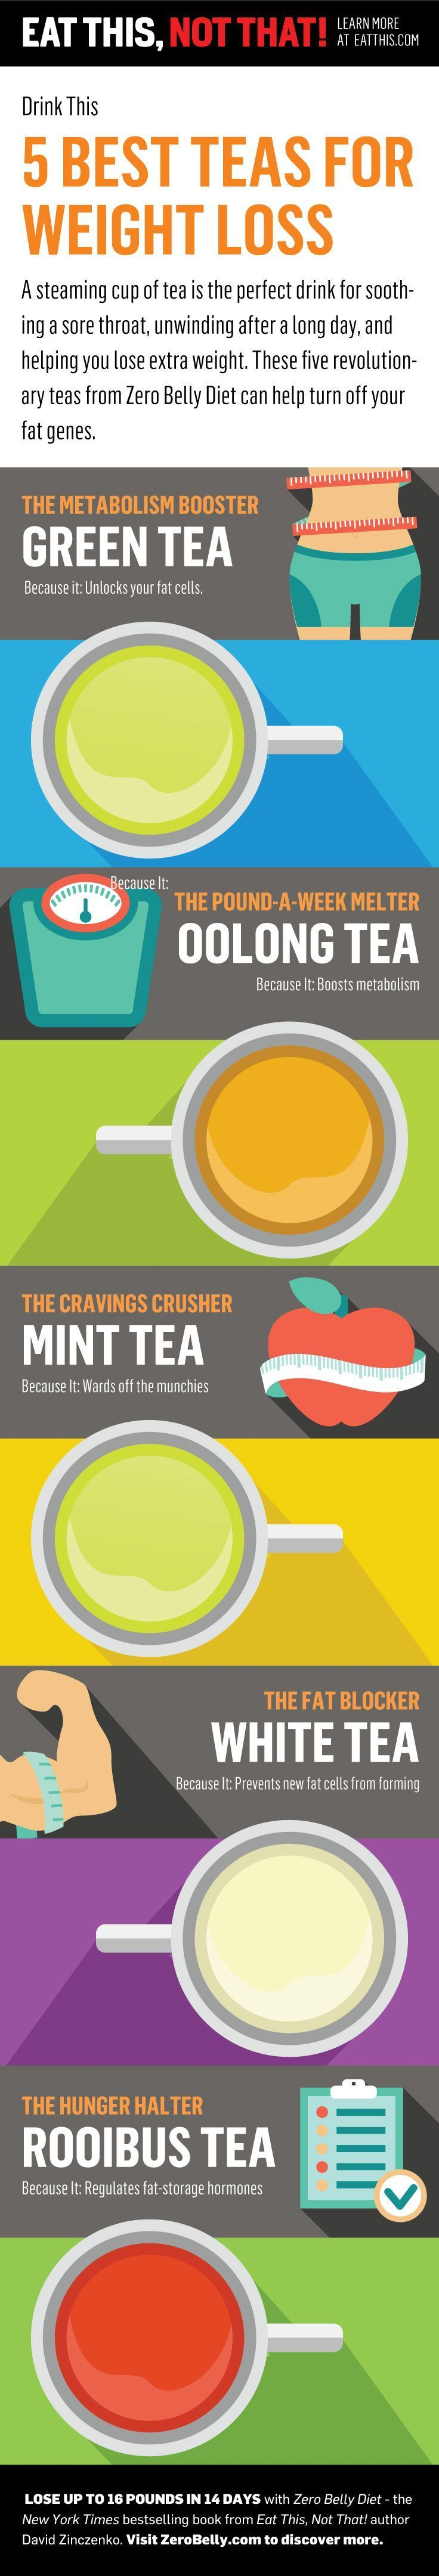 Find This Pin And More On Matcha Tea And Weight Loss